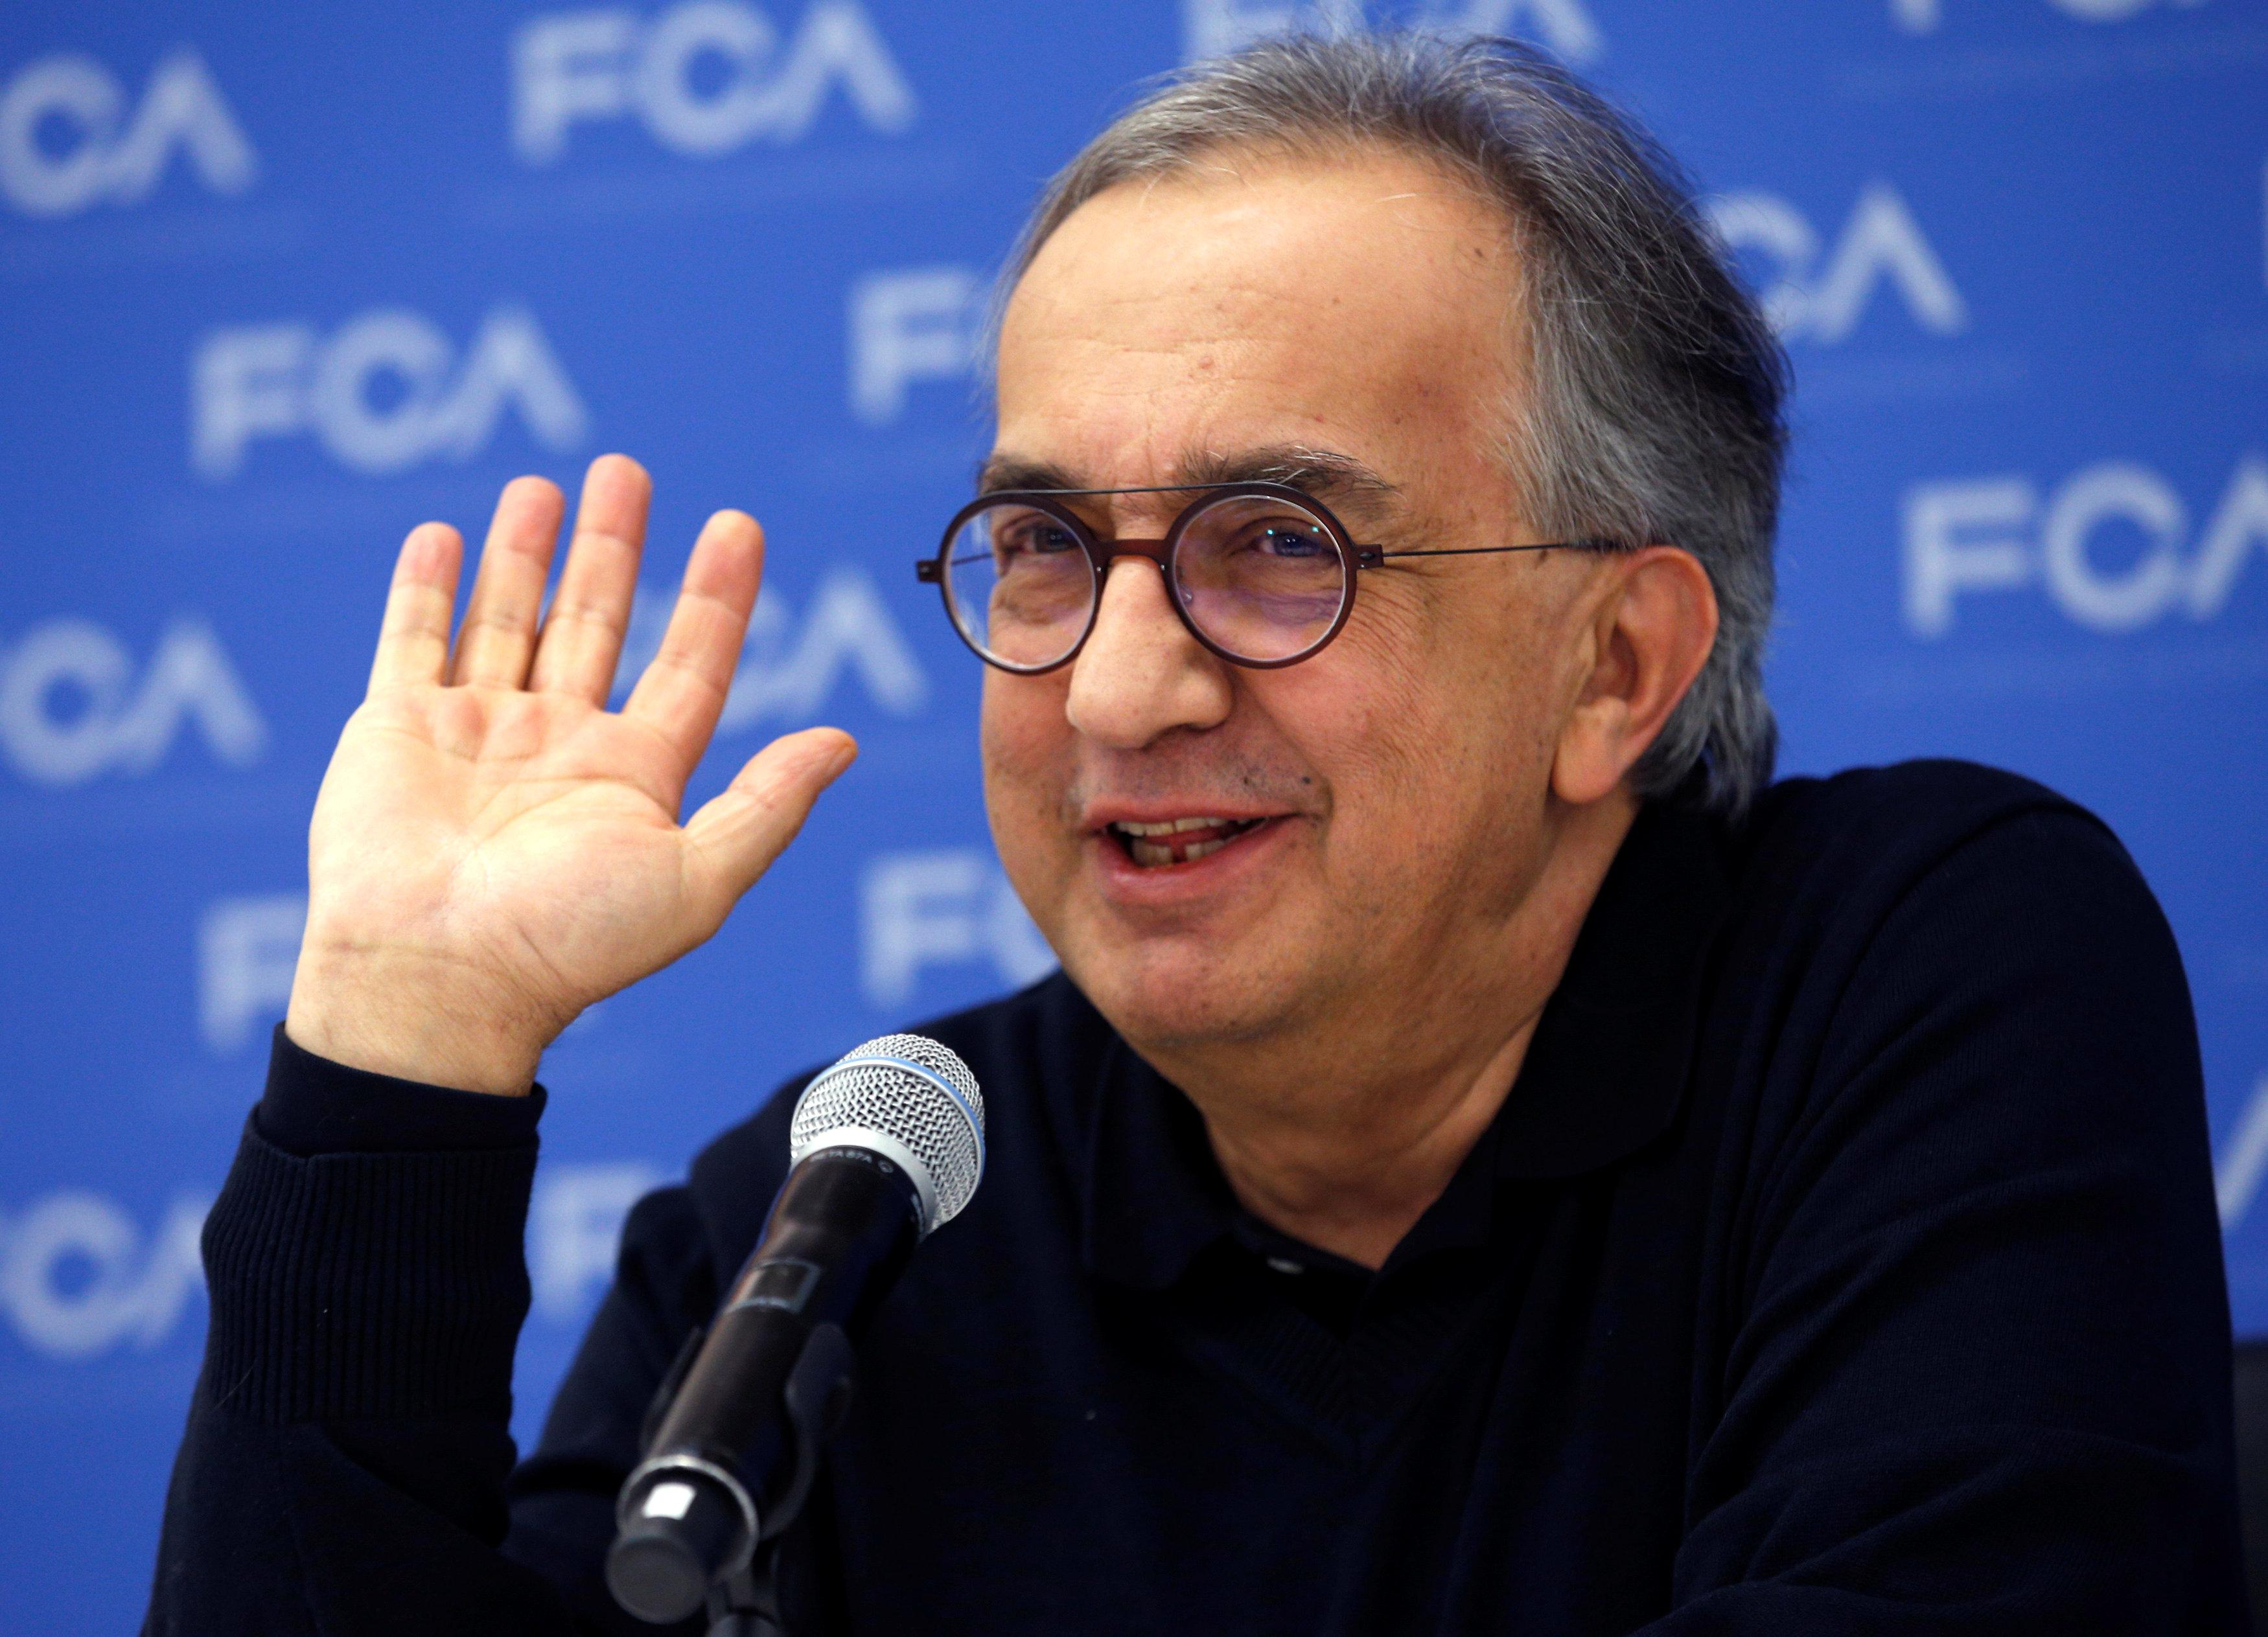 Sergio Marchionne, CEO, Fiat Chrysler Automobiles, speaks with journalists at the North American International Auto Show in Detroit, Michigan, U.S., January 15, 2018. Rebecca Cook